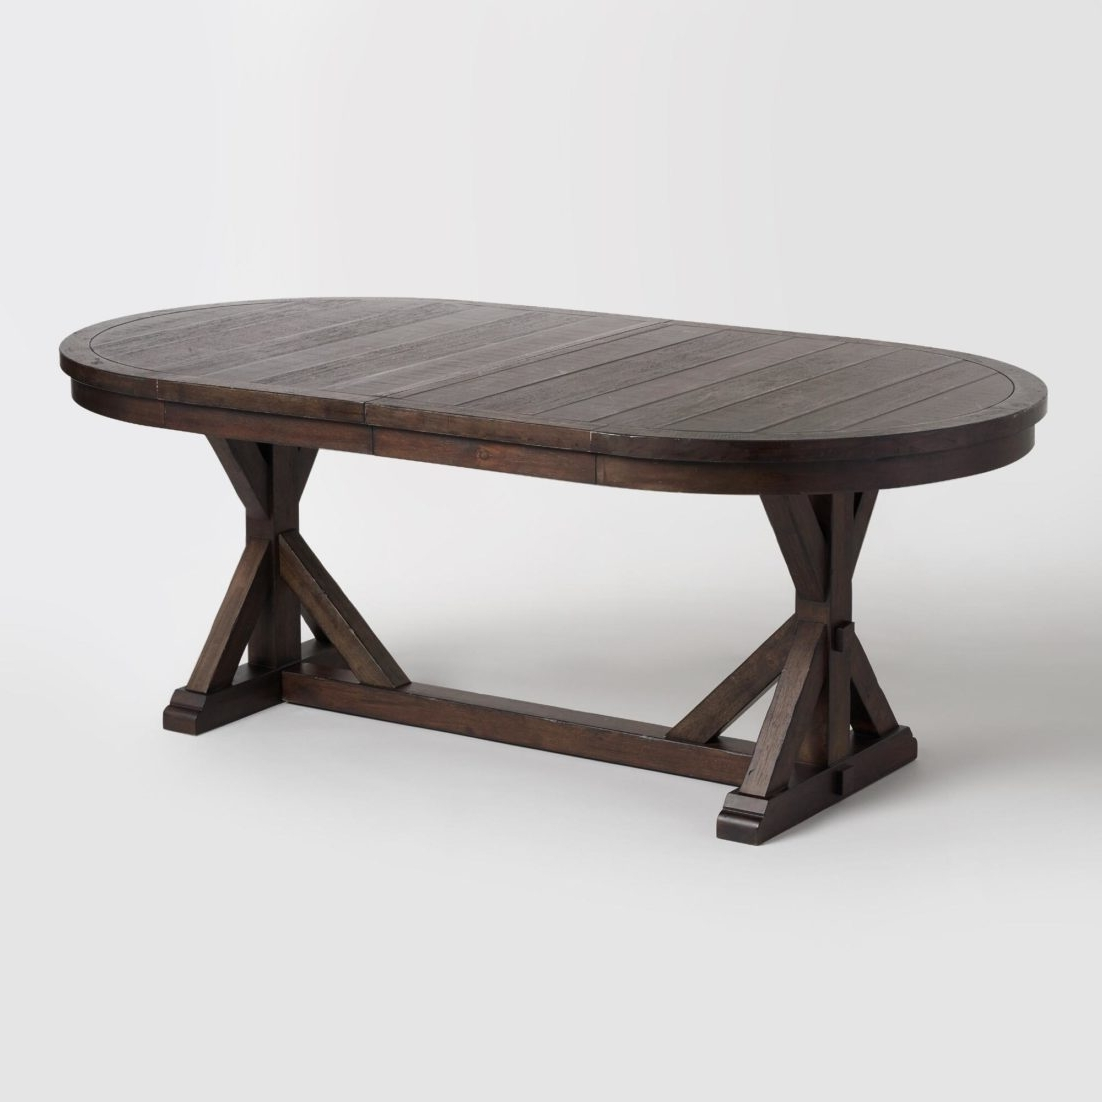 Wood Dining Table Room Tables Rustic Farmhouse Style World Market In Widely Used Oval Reclaimed Wood Dining Tables (View 25 of 25)